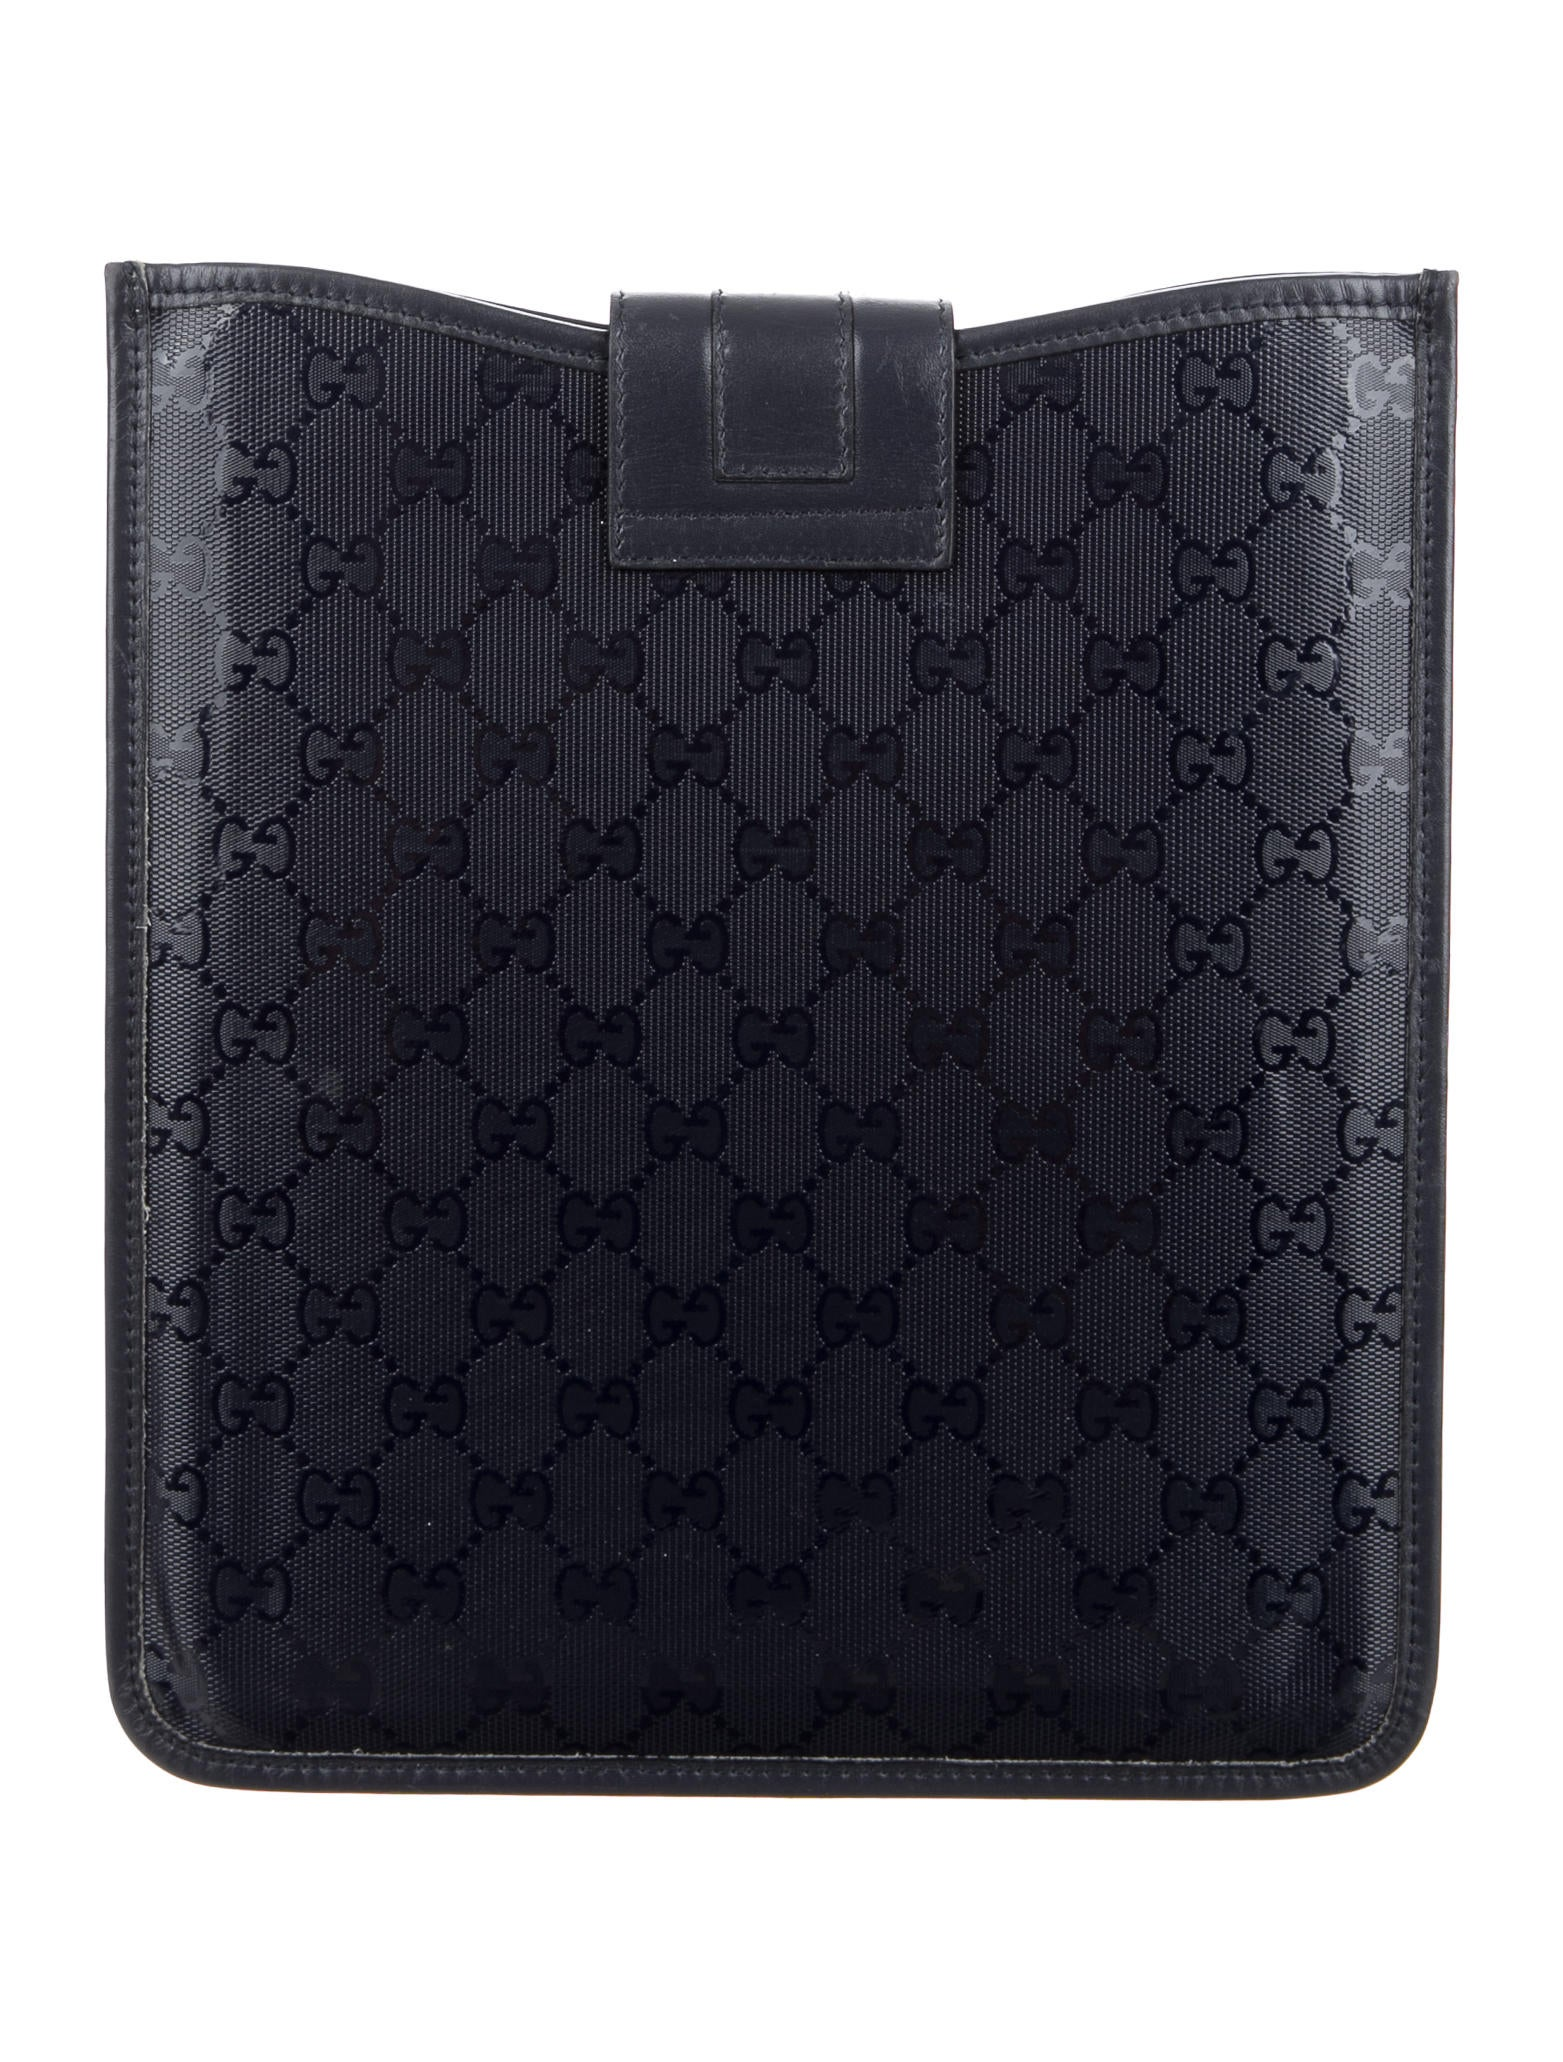 Gucci Gg Imprime Ipad Sleeve Technology Guc141660